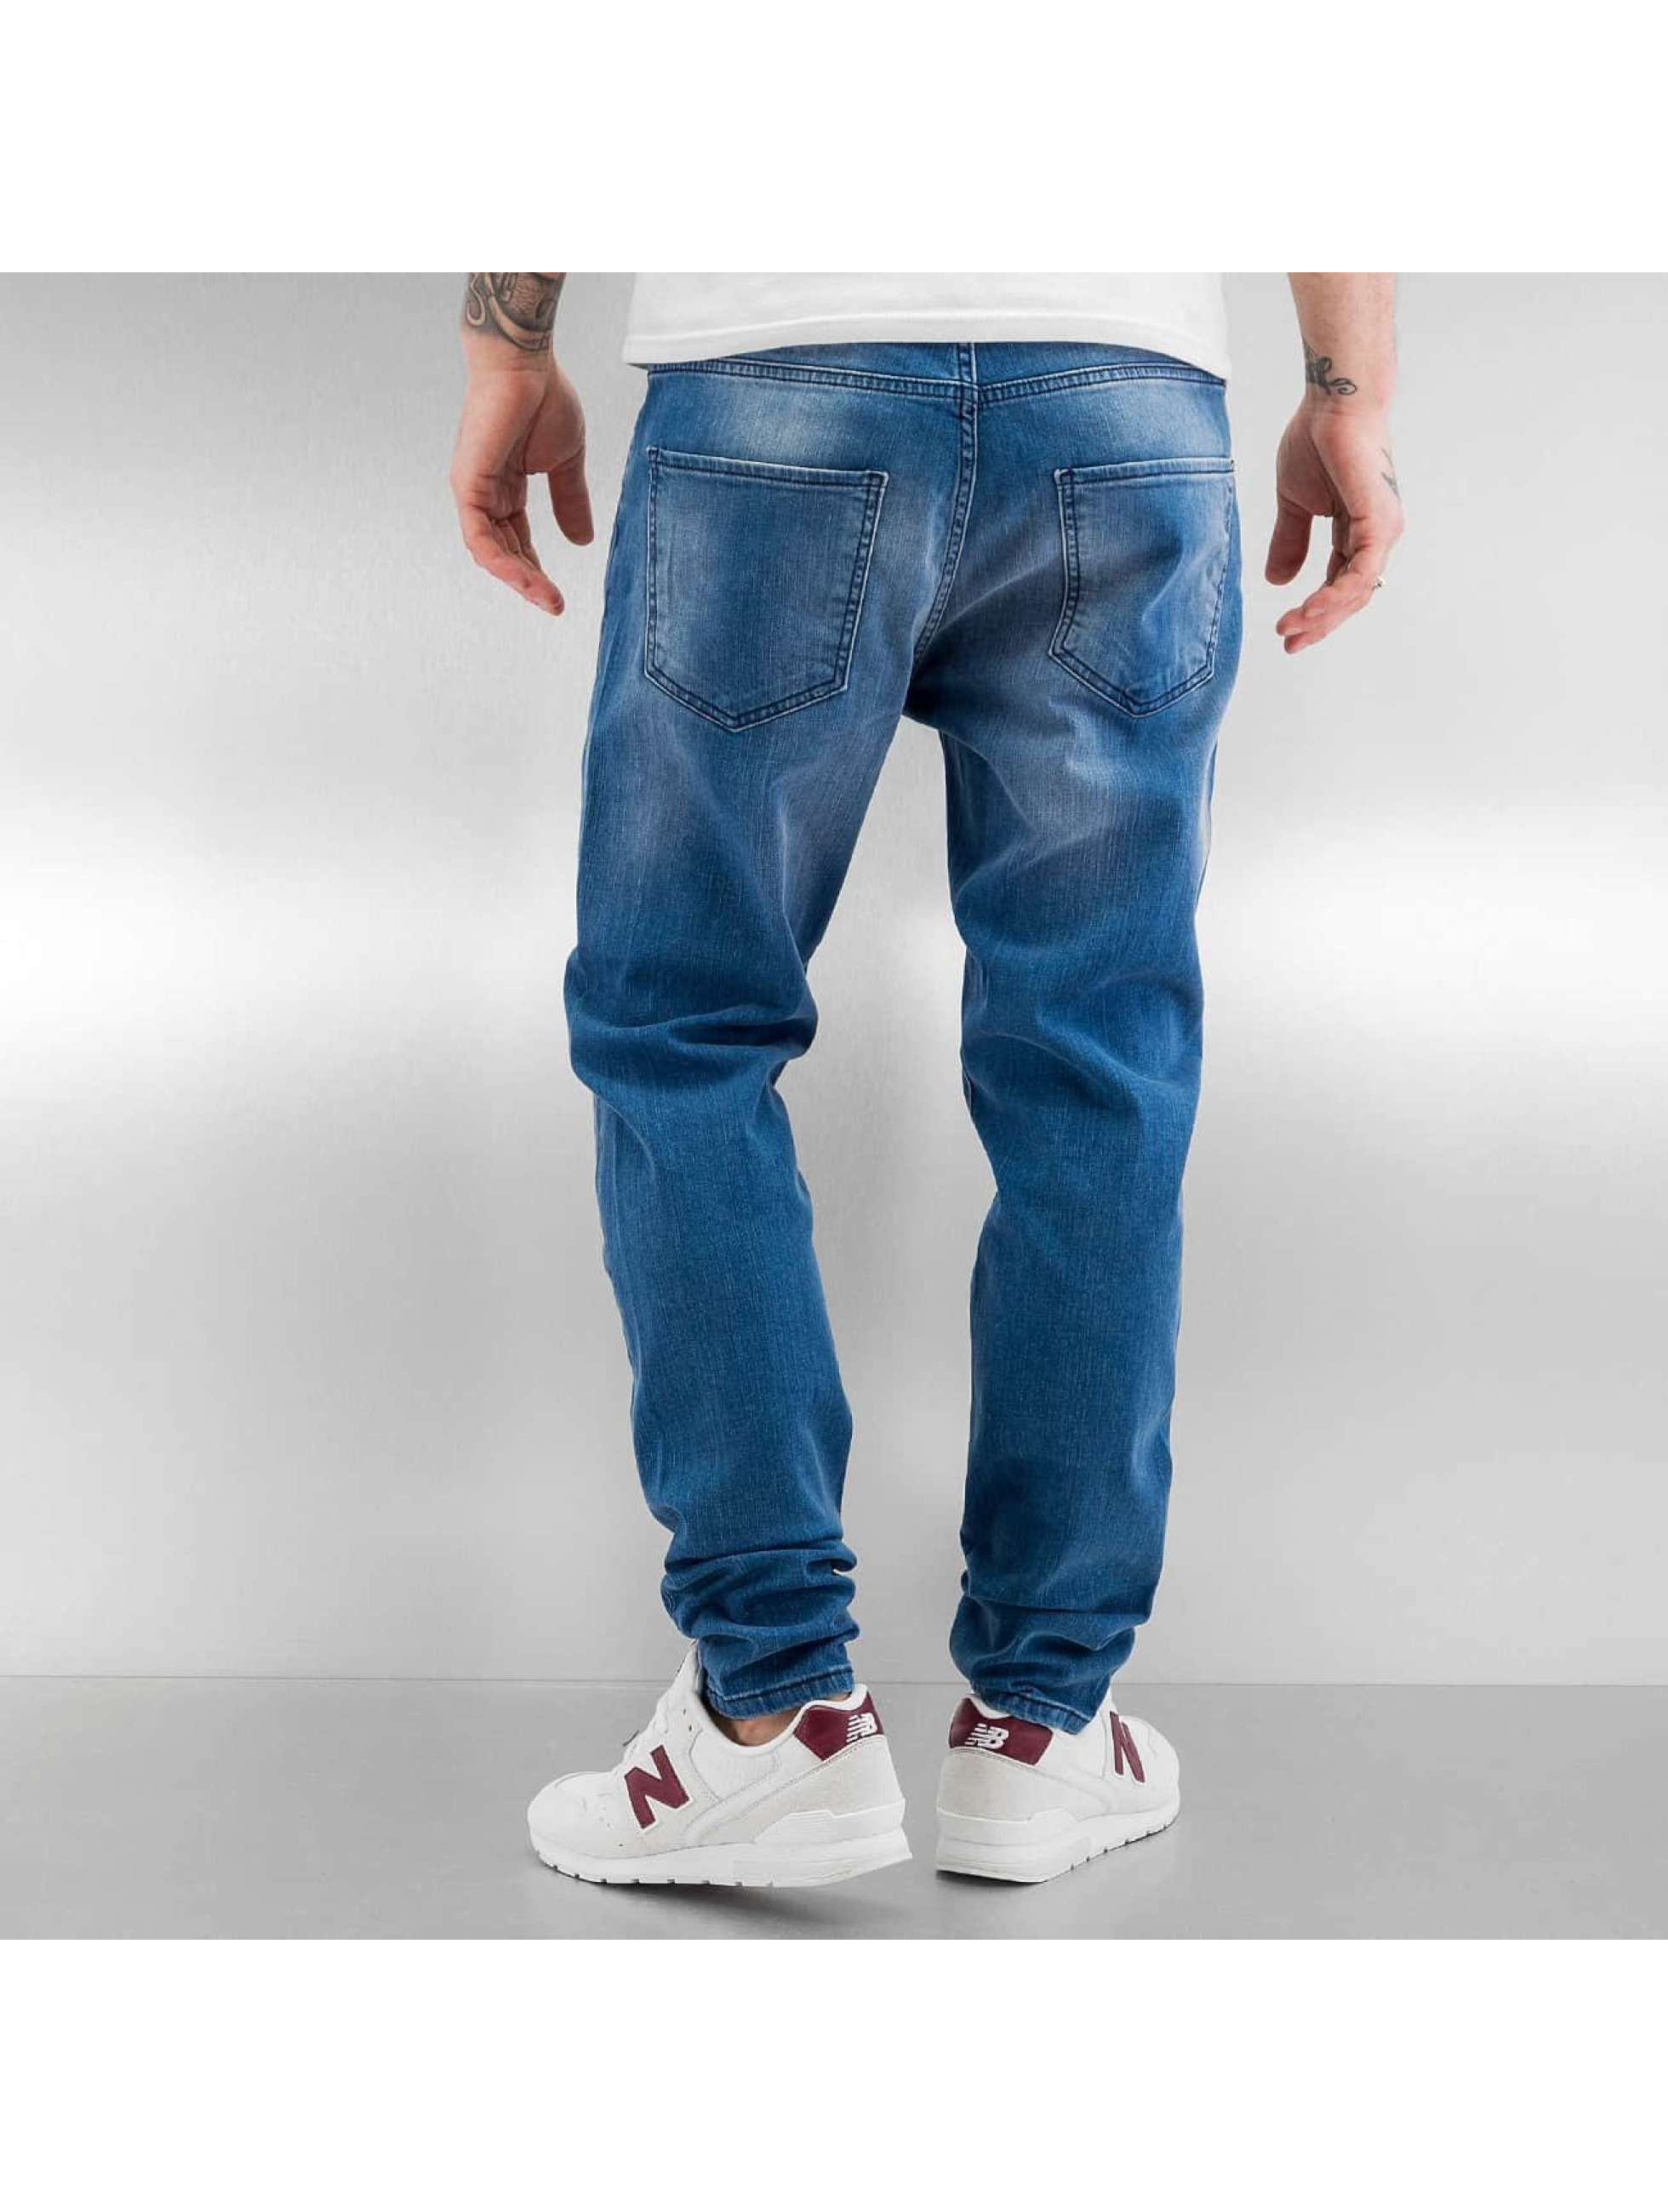 Just-Rhyse-Uomini-Jeans-Jeans-slim-fit-Harrison